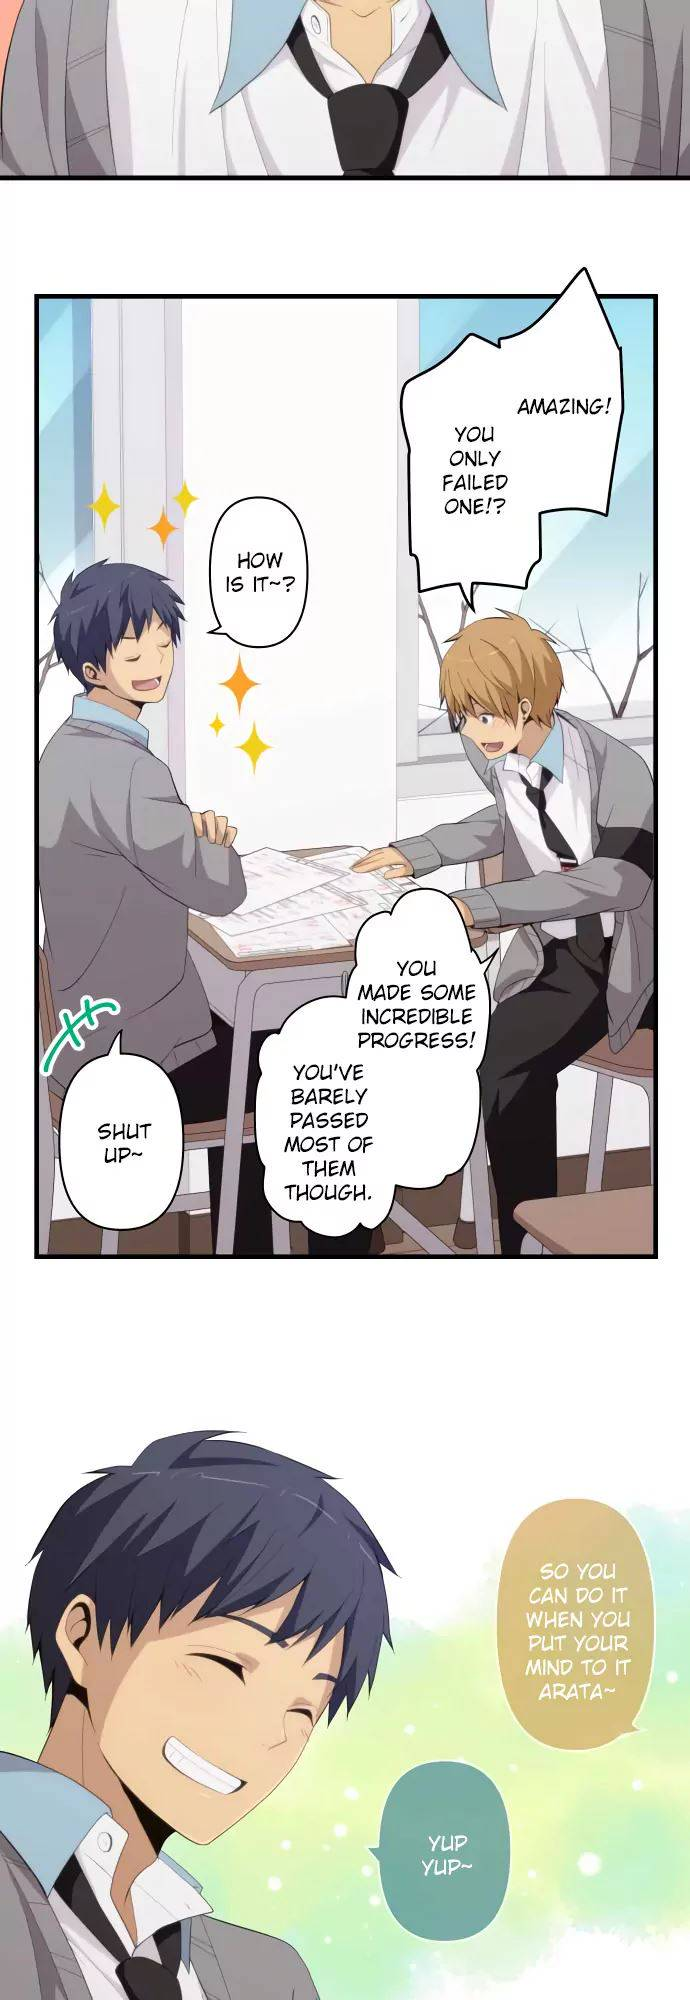 ReLIFE Chapter 188 Page 20